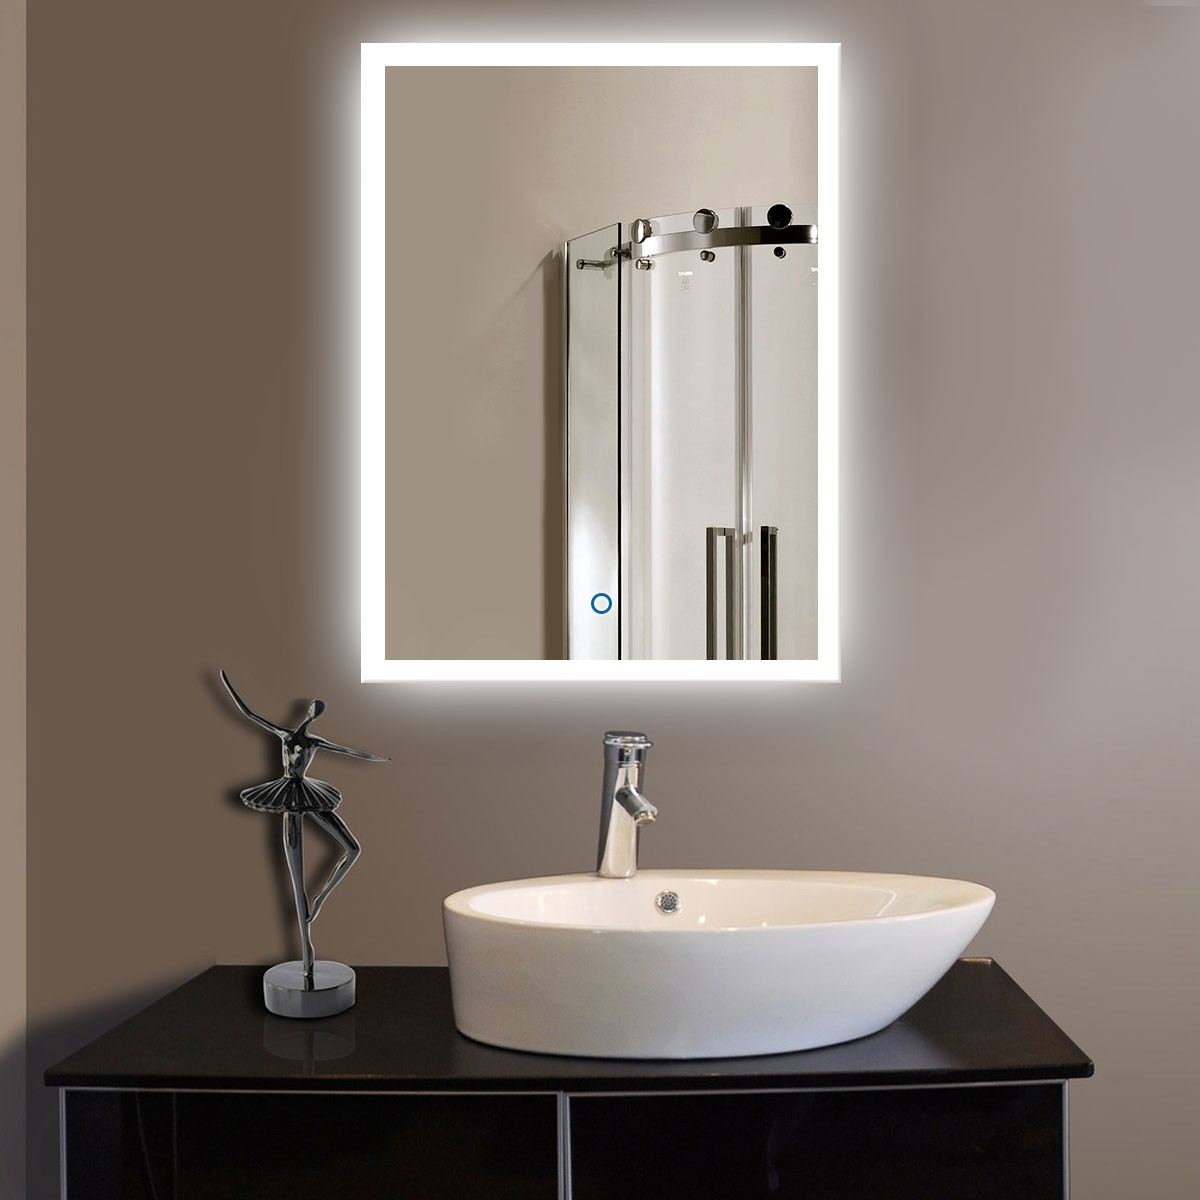 24 x 32 In Vertical LED Backlit Bathroom Mirror, Touch Button (DK-OD-N031)